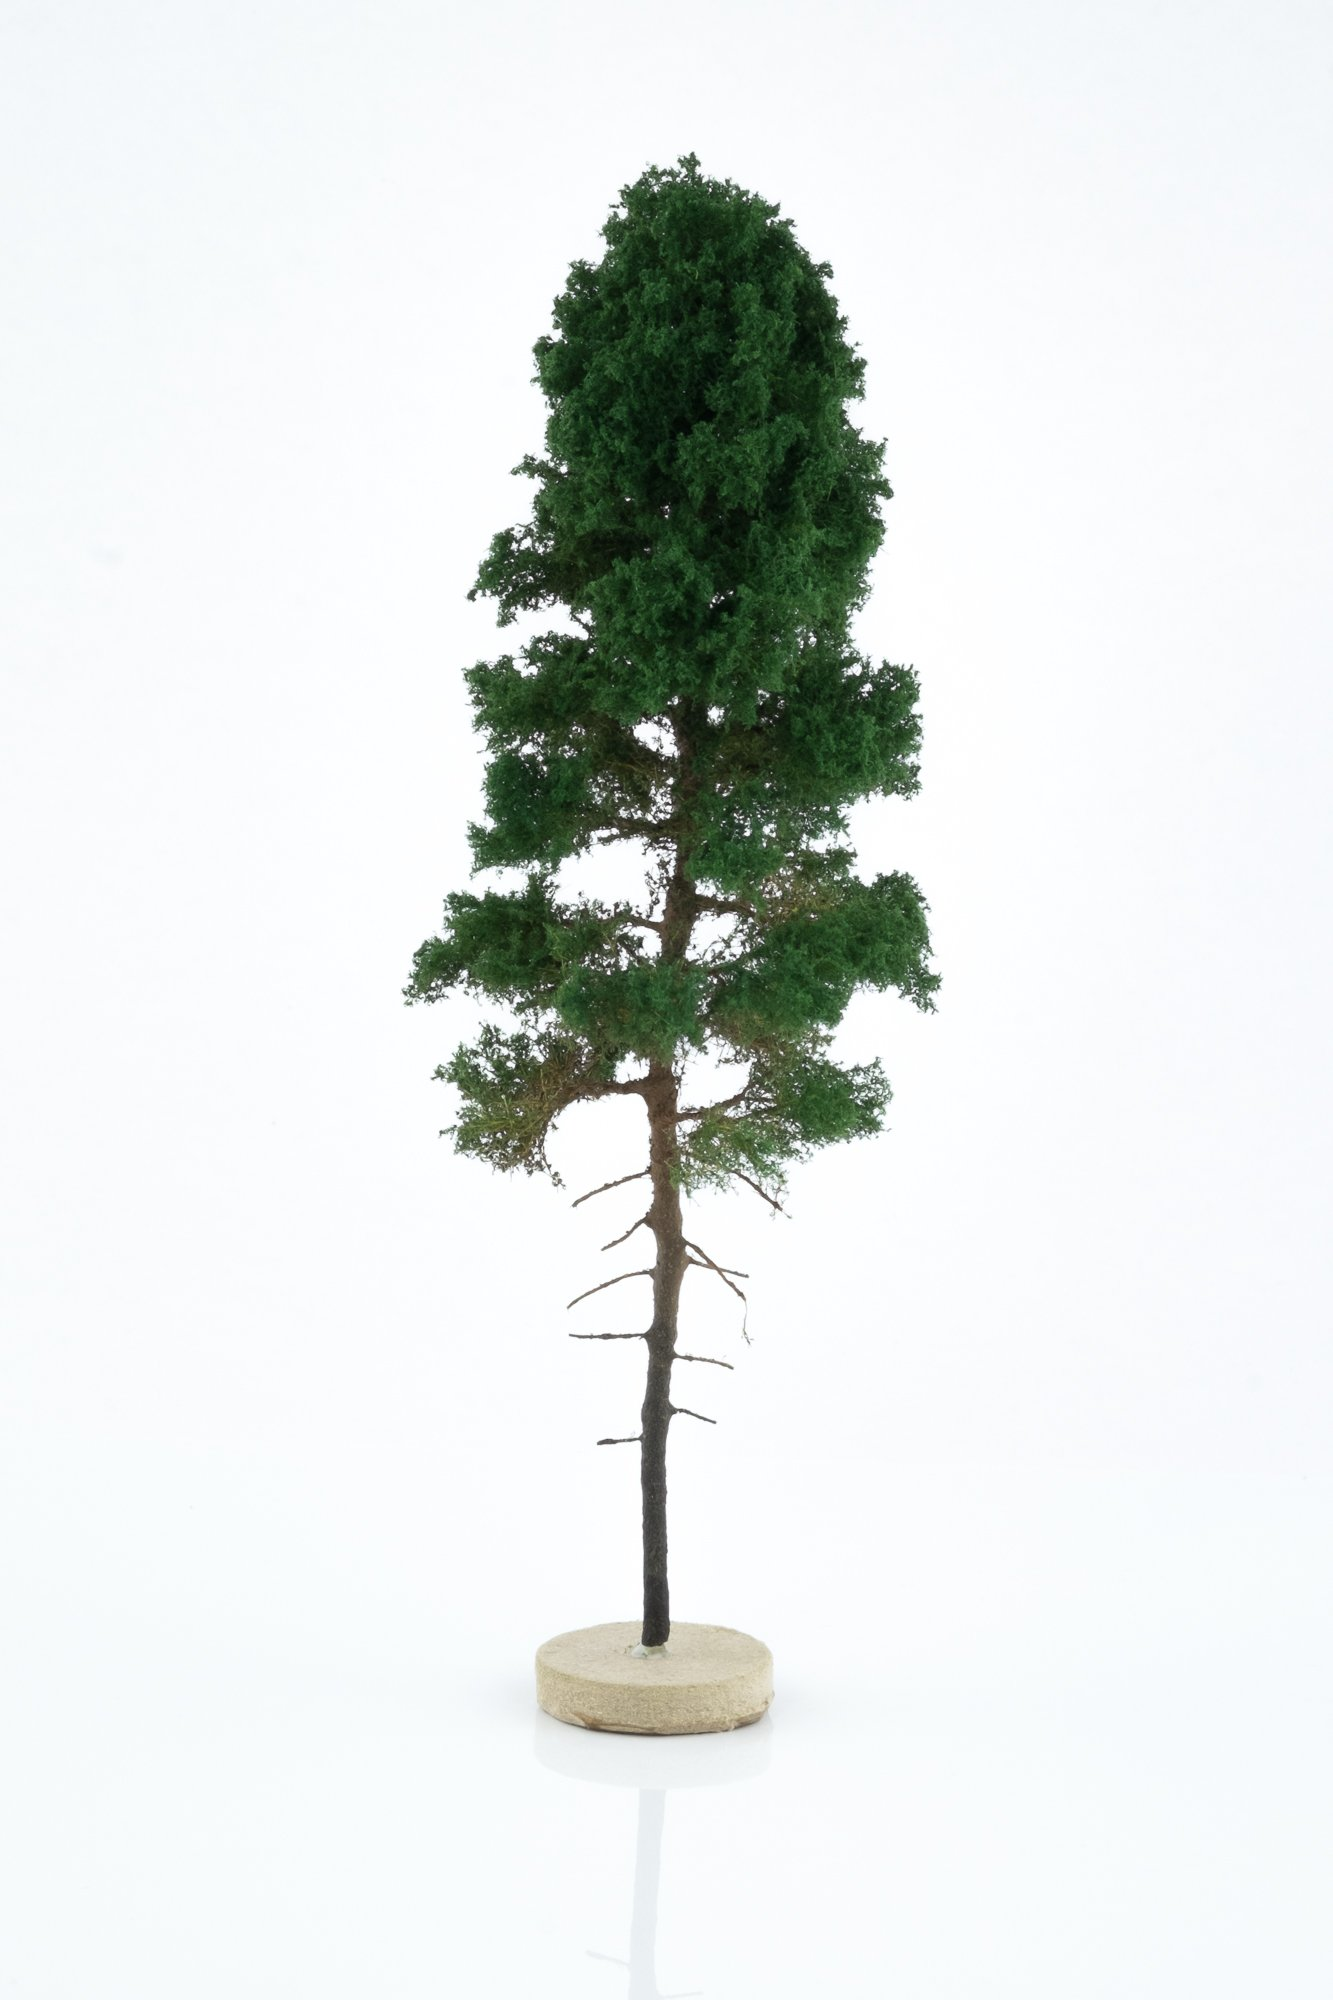 Hand-made, green, pine tree model. Size between 18 and 20 cm. Made from high quality model supplies by Primo Models.